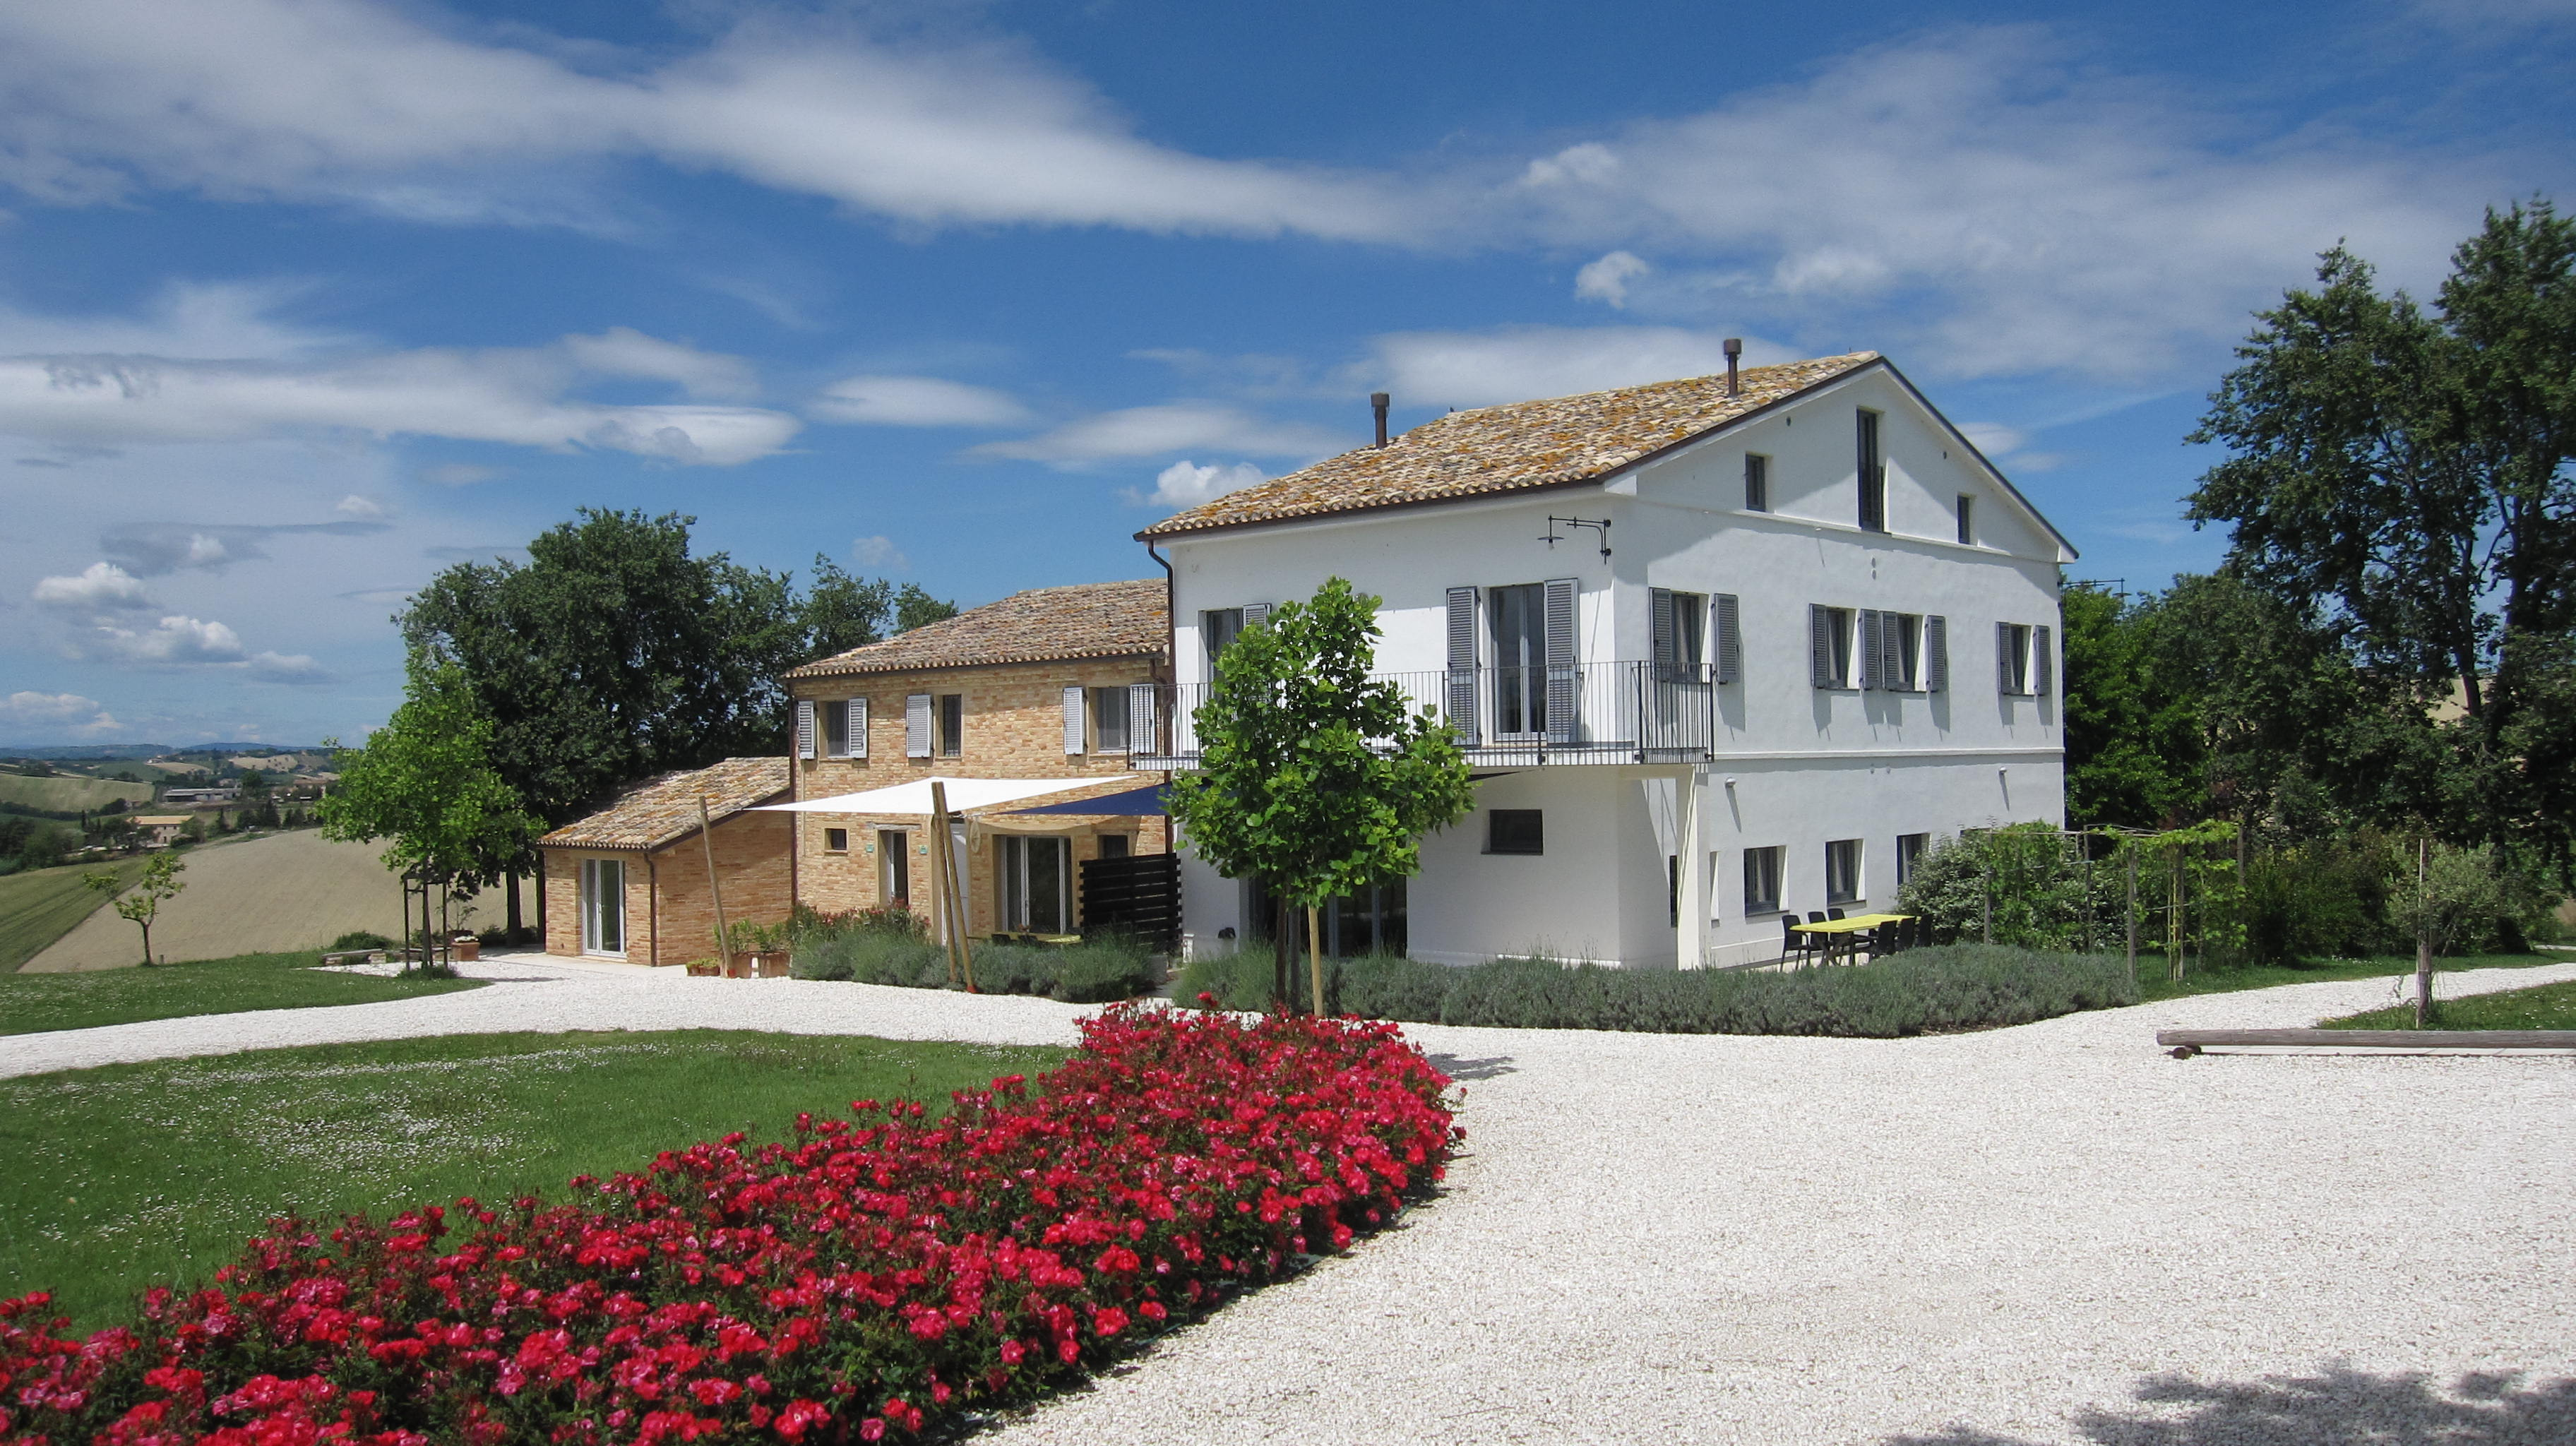 Farmhouse/Accommodation with 8 bedrooms